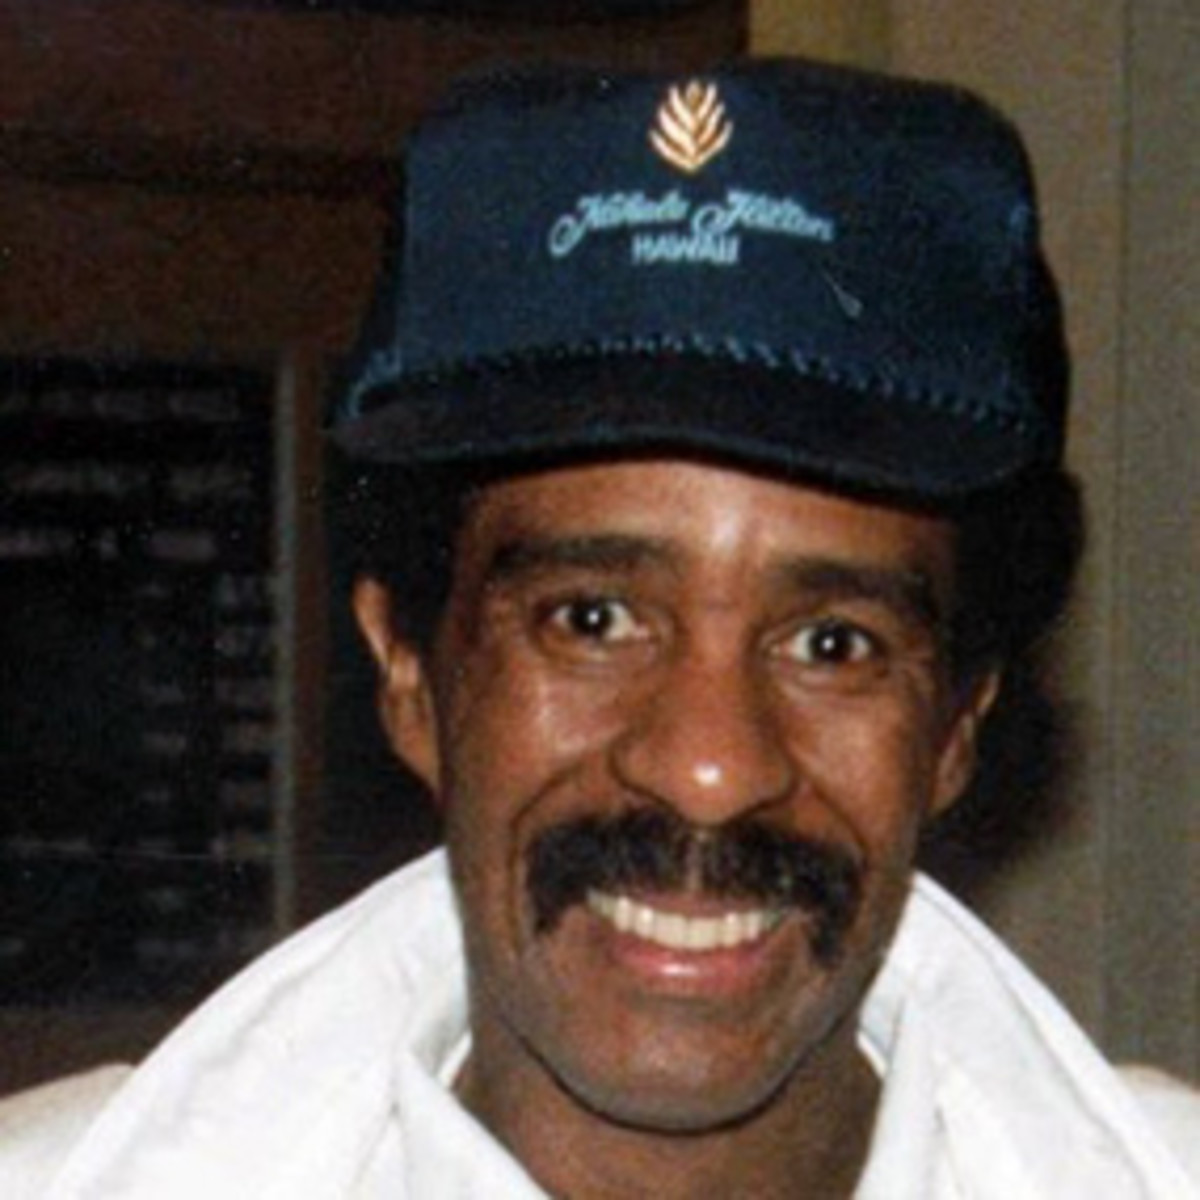 "Richard Pryor, Actor, Comedian - (December 1, 1940 - December 10, 2005) In 1991, Pryor announced that he had been suffering from multiple sclerosis since 1986. In response to giving up drugs after being diagnosed with multiple sclerosis, he said: ""Go"